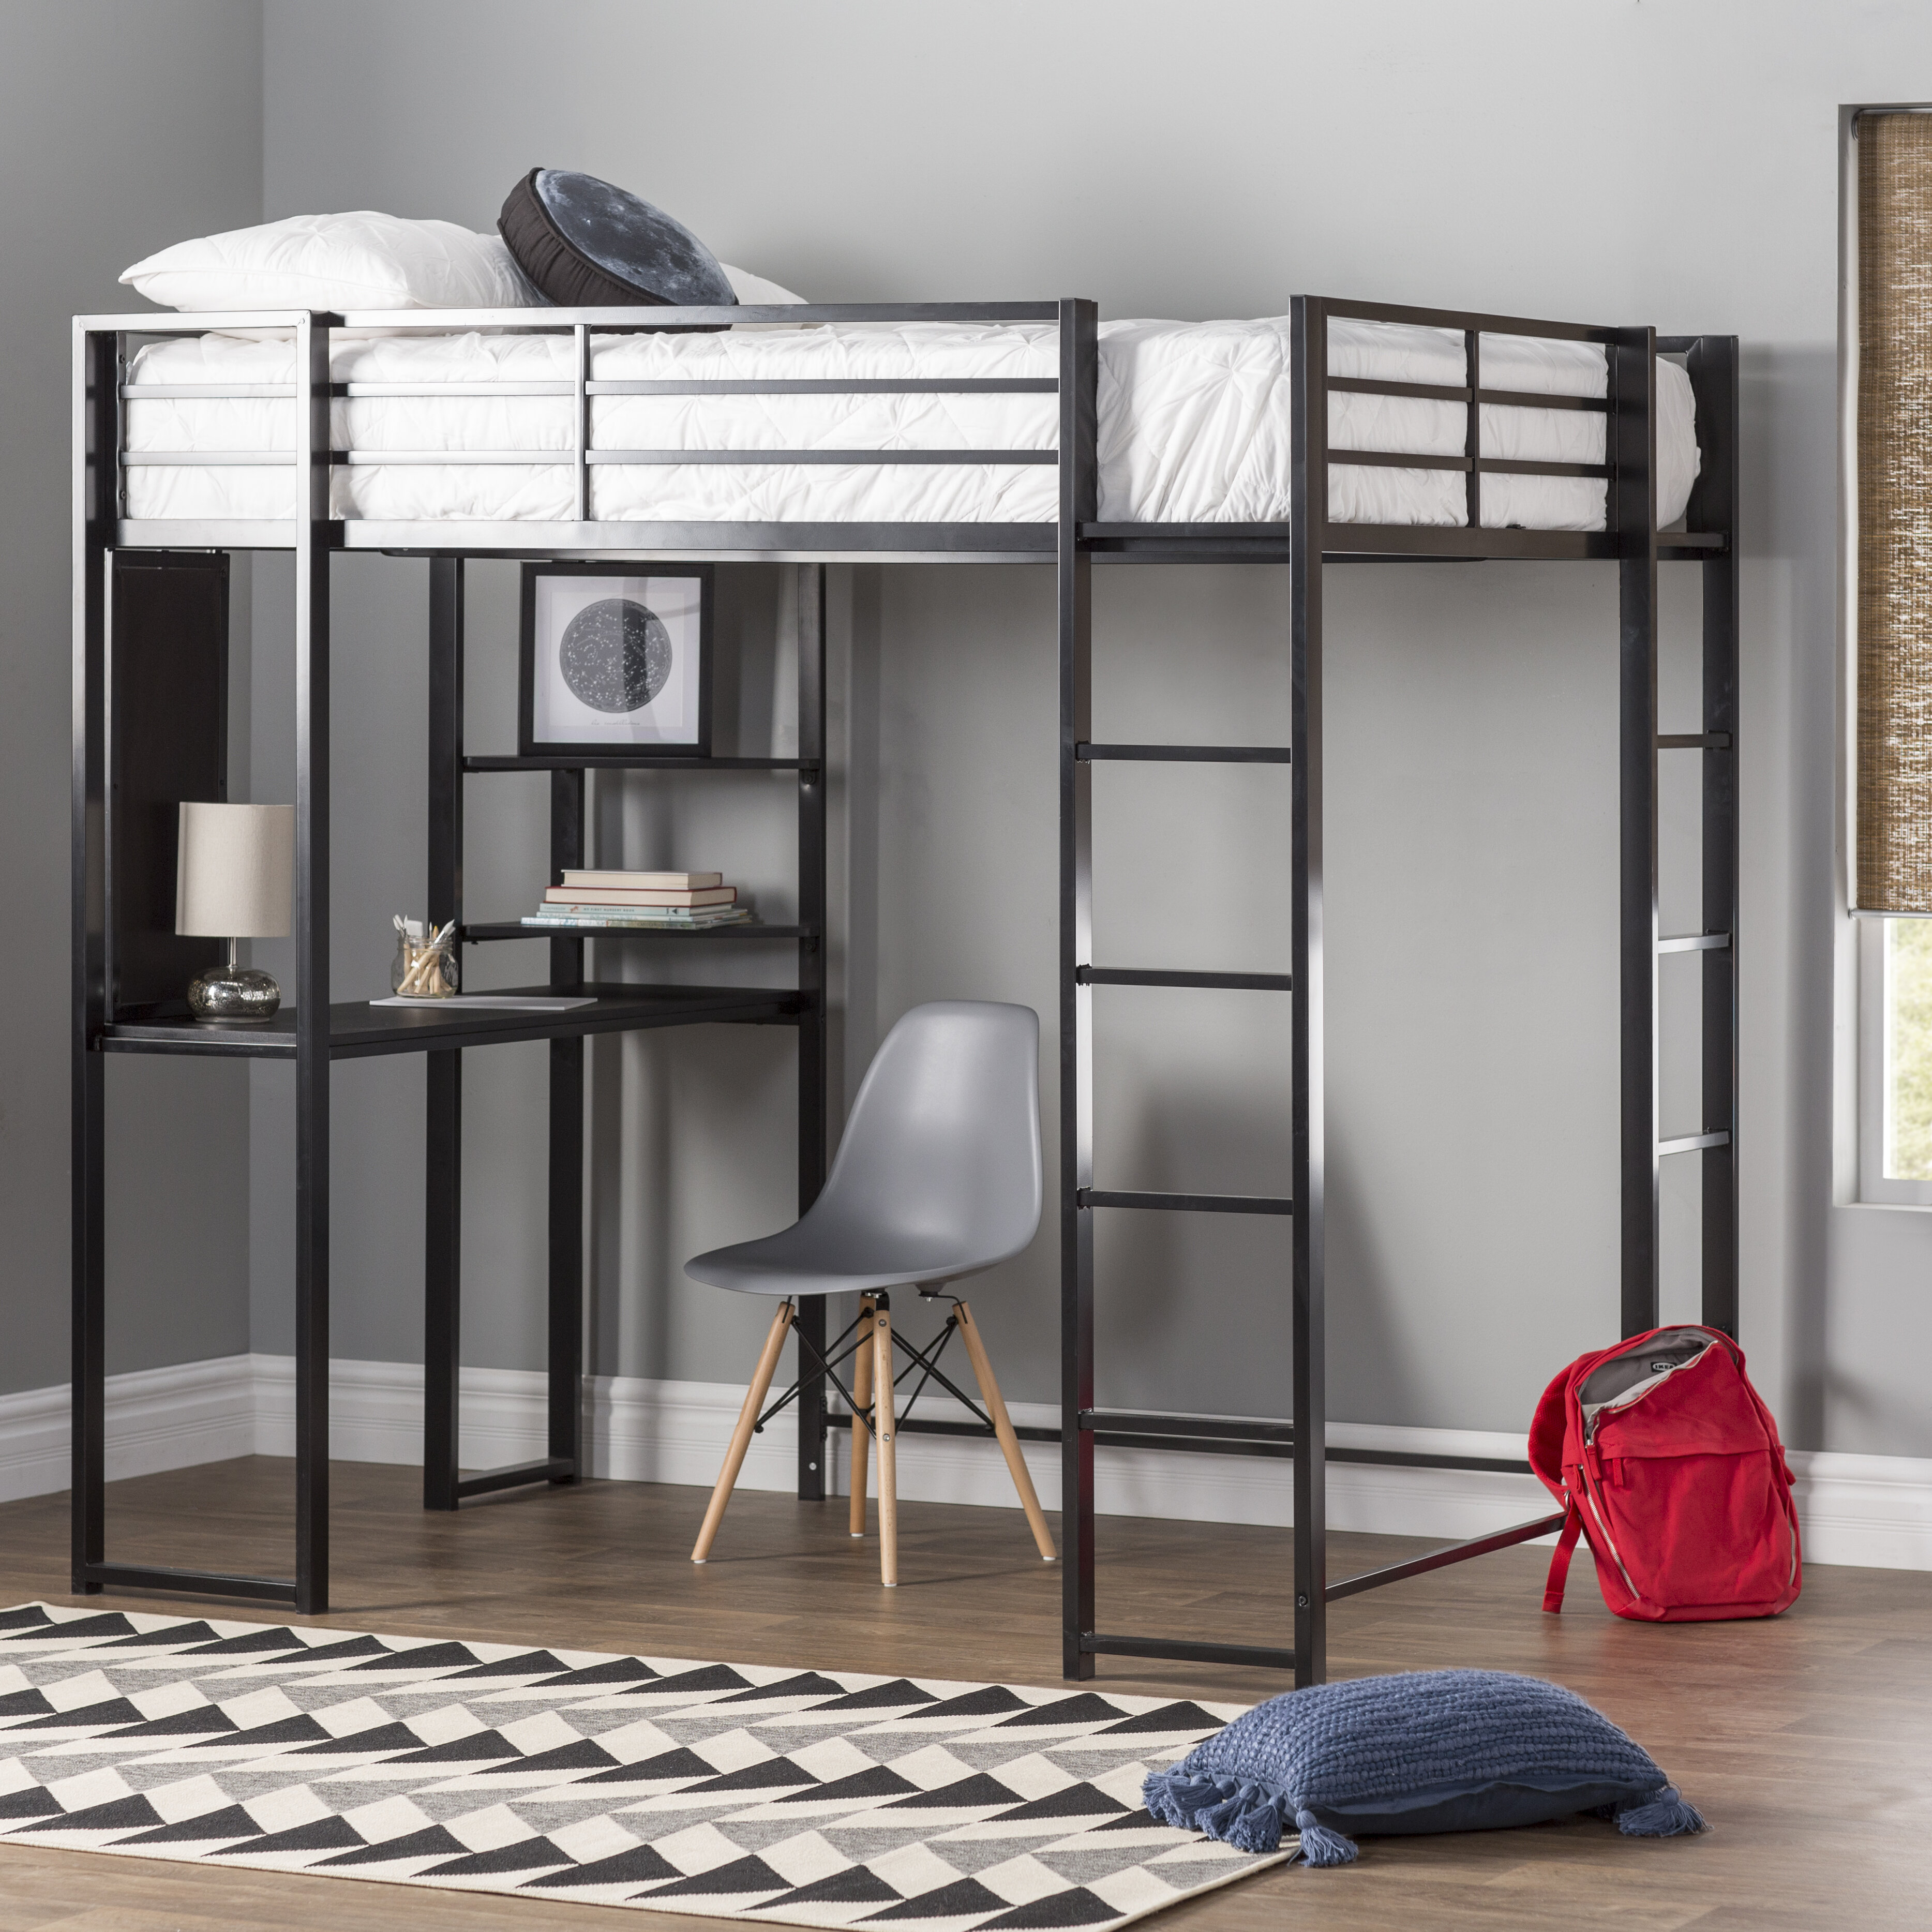 Mack Milo Aime Loft Bed With Bookcase Reviews